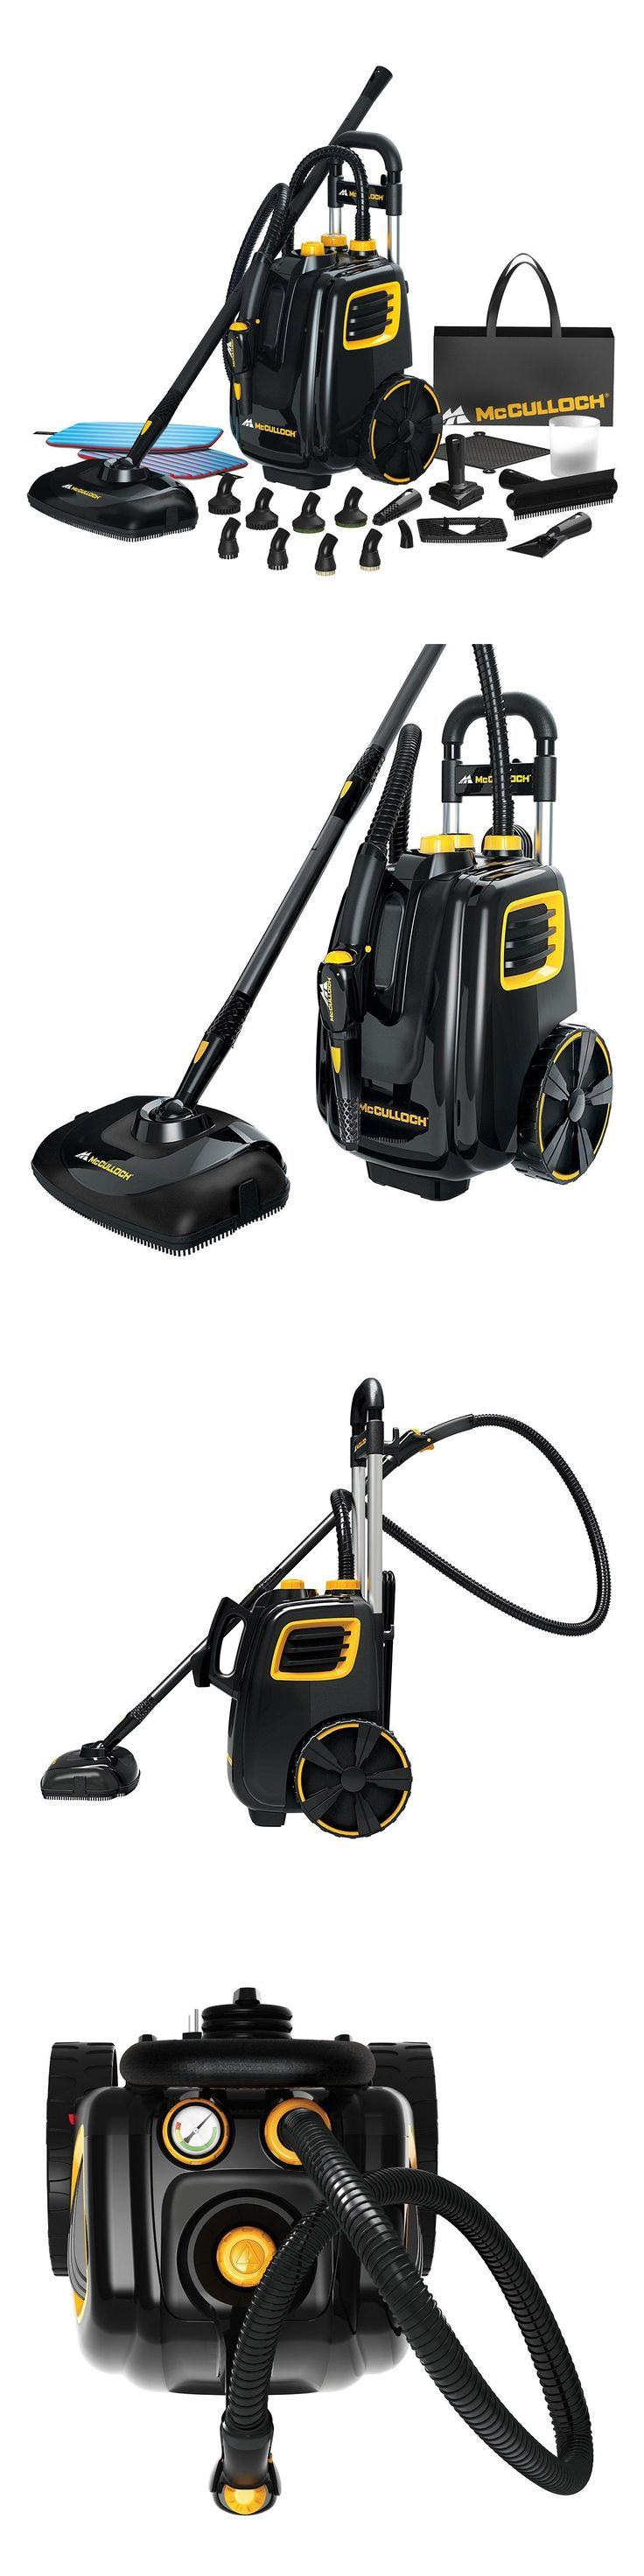 Carpet Steamers 79656: New! Mcculloch Mc1385 Deluxe Canister Steam System Cleaner - Free Shipping -> BUY IT NOW ONLY: $184 on eBay!